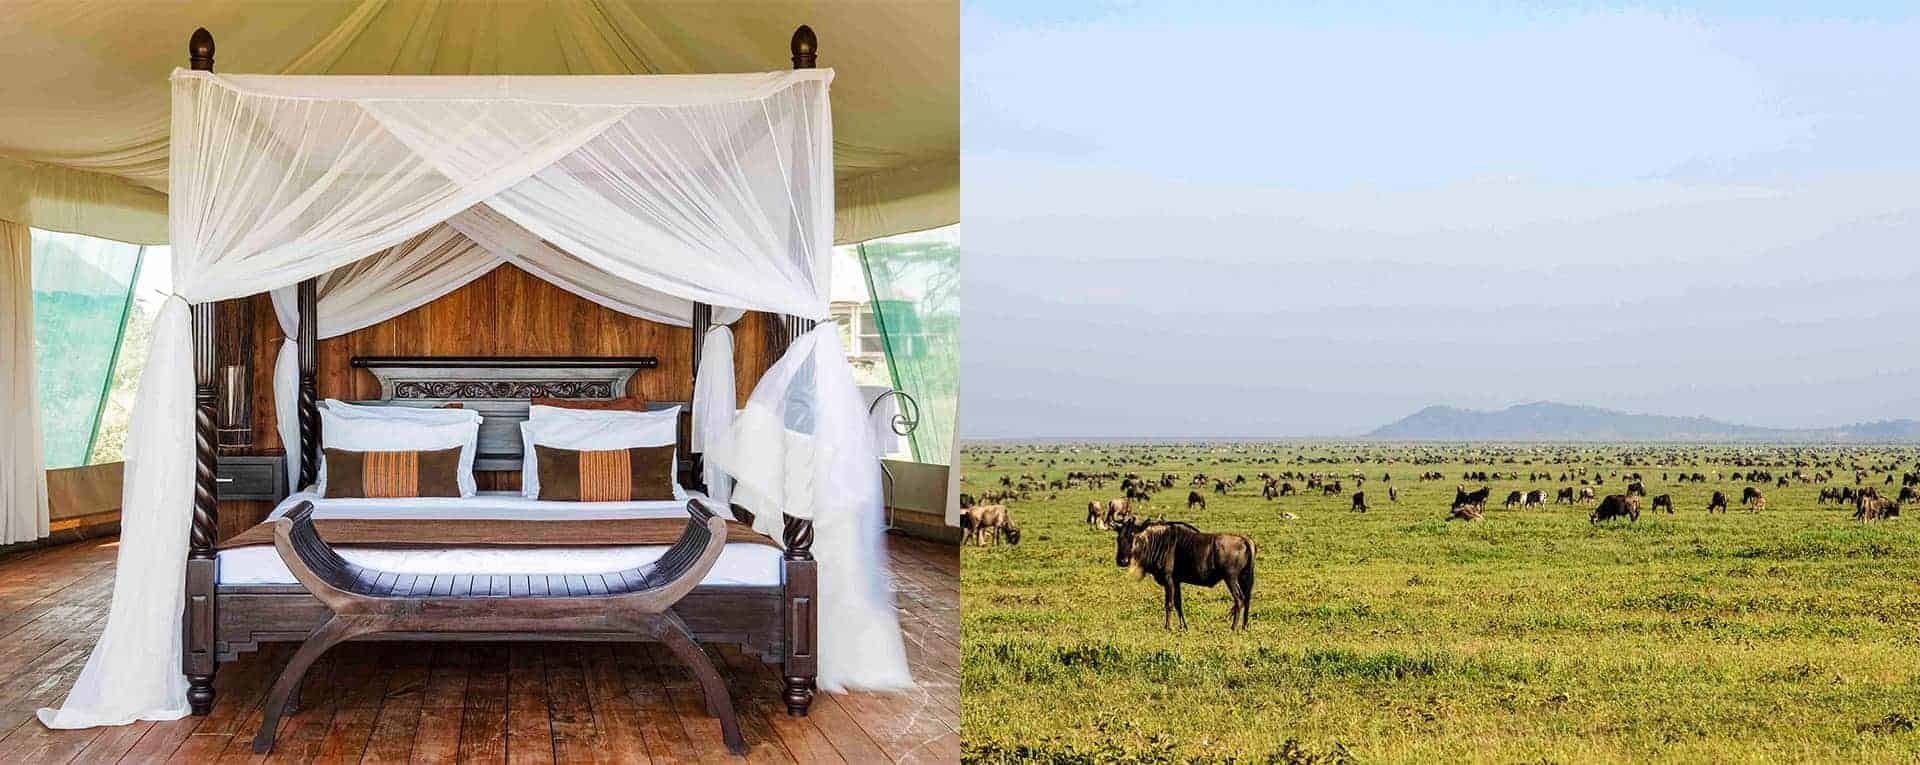 Tanzania & Kilimanjaro Tours | Inspire Me World Travel | Africa Tours